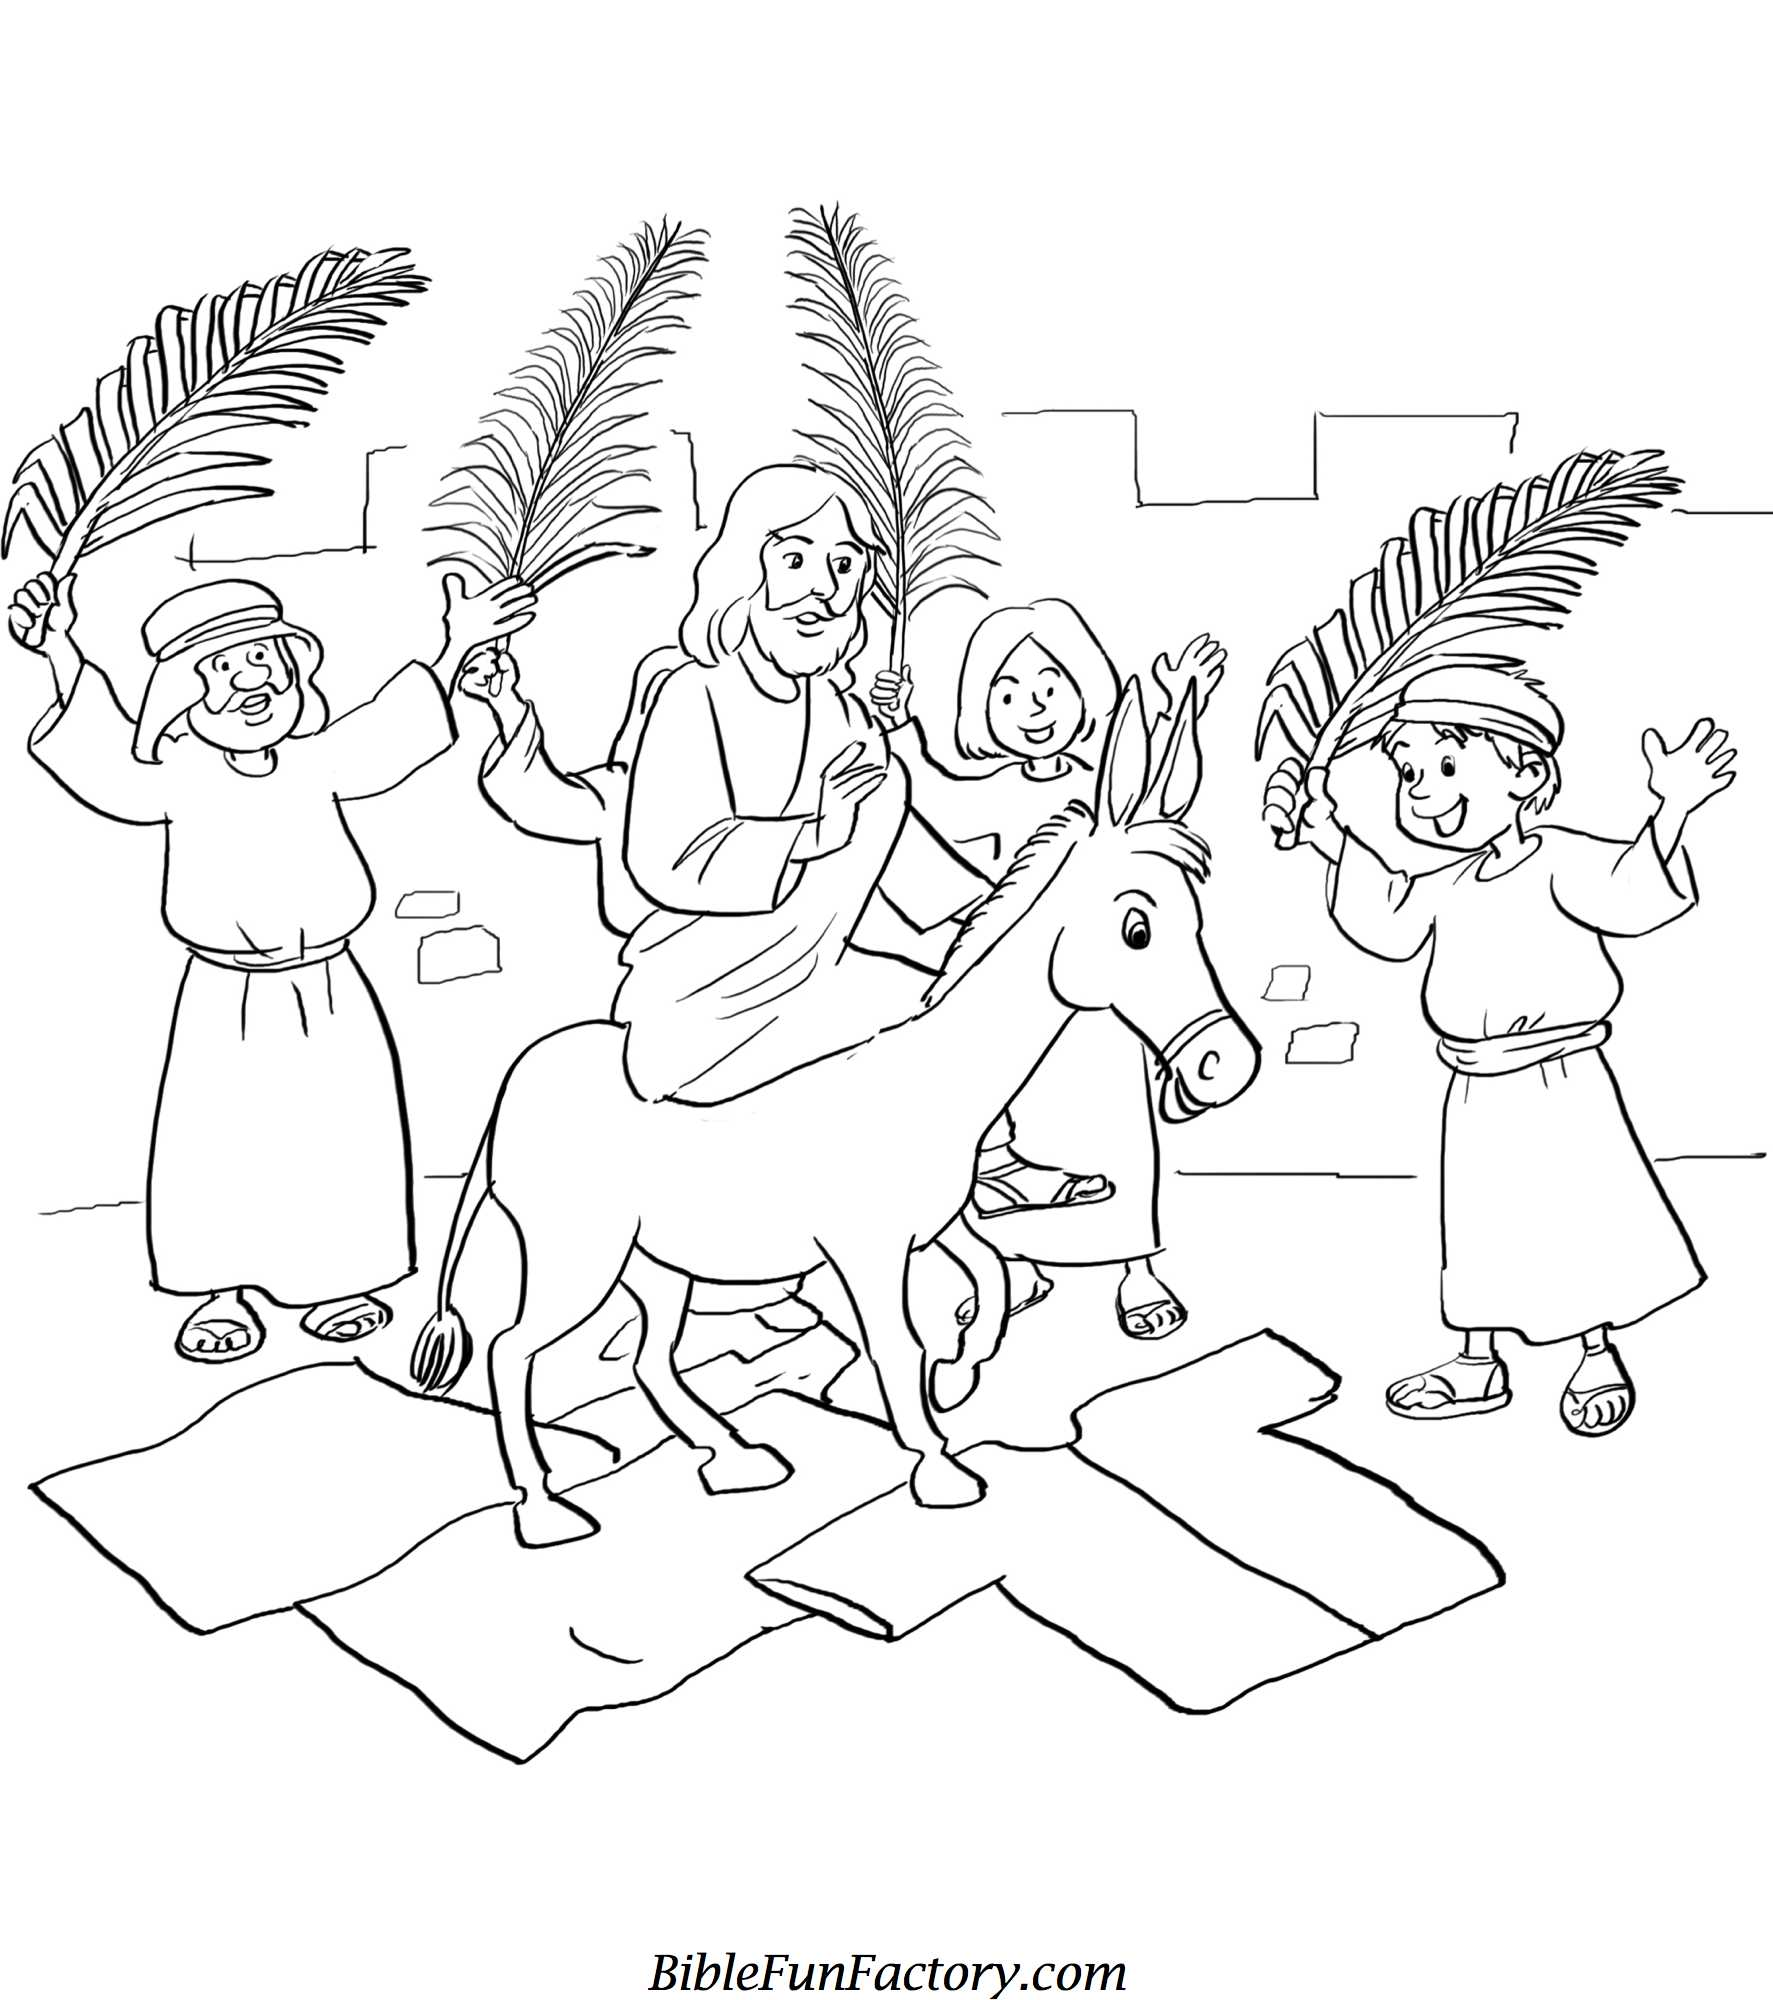 palm sunday coloring pages printable - photo#1